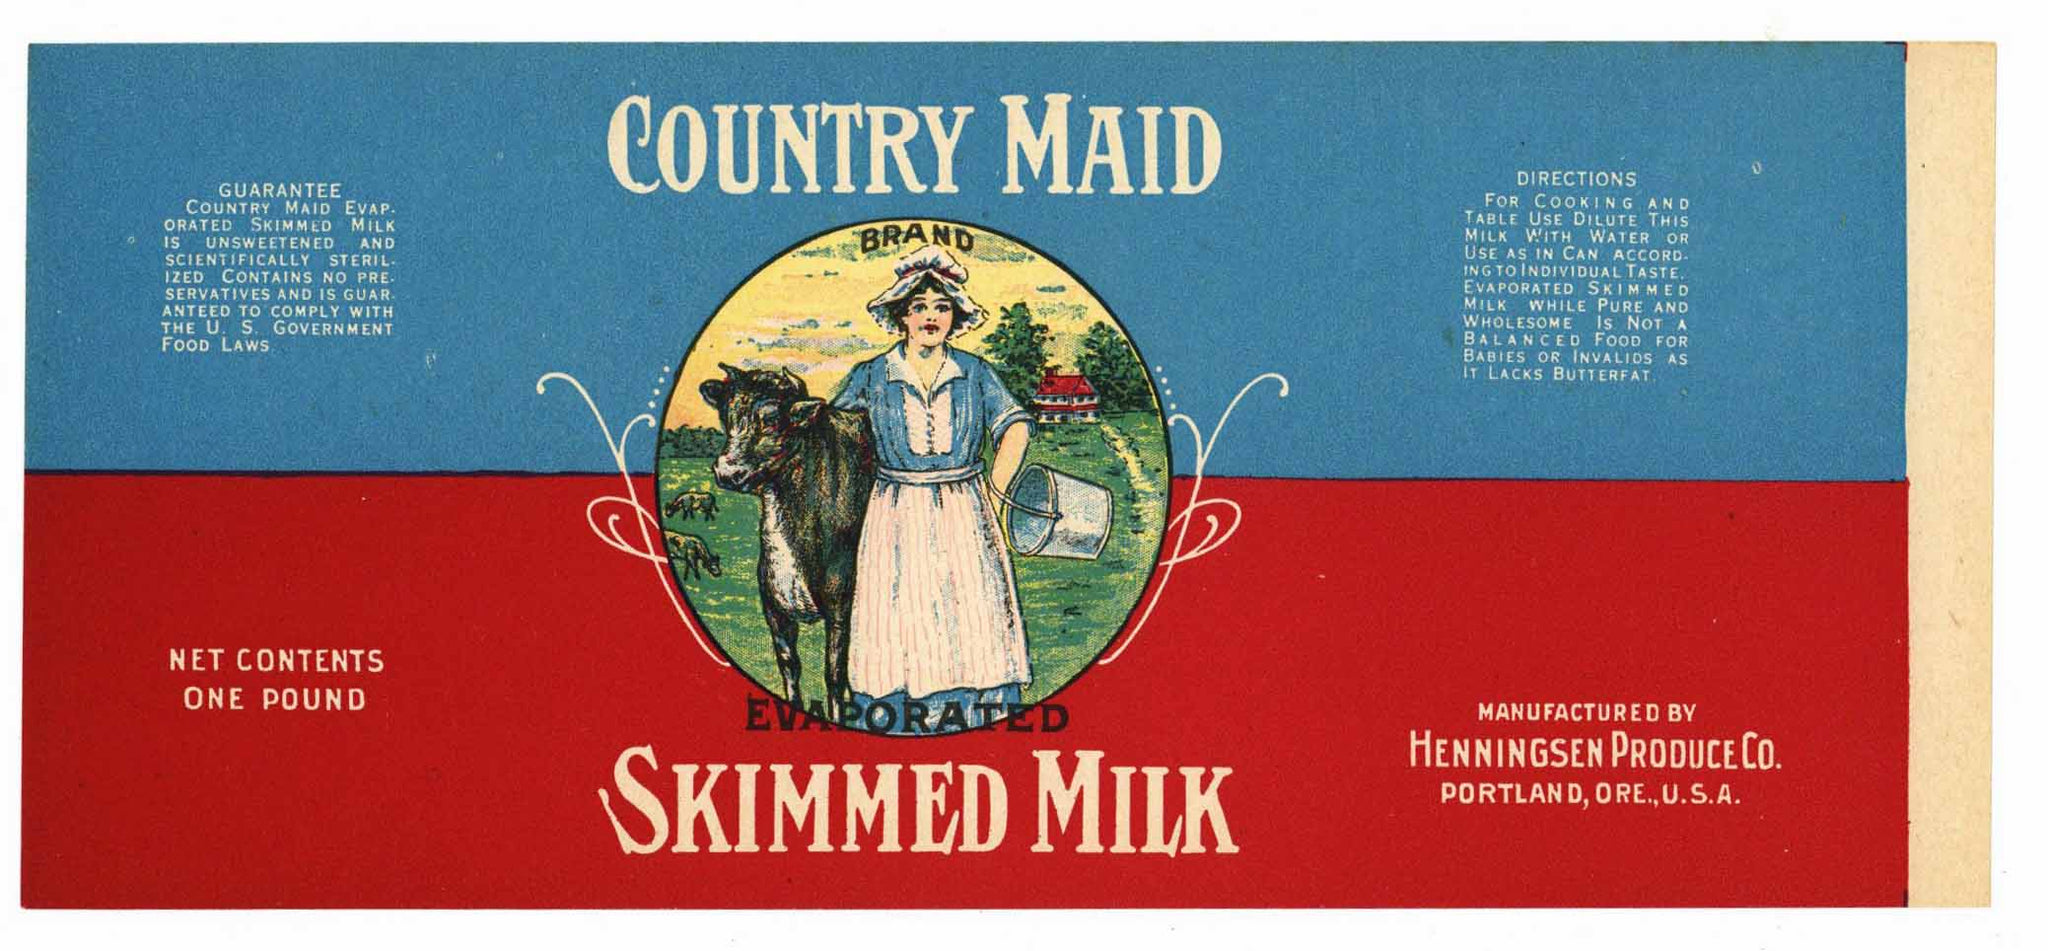 COUNTRY MAID Brand Vintage Milk Label (CAN242)